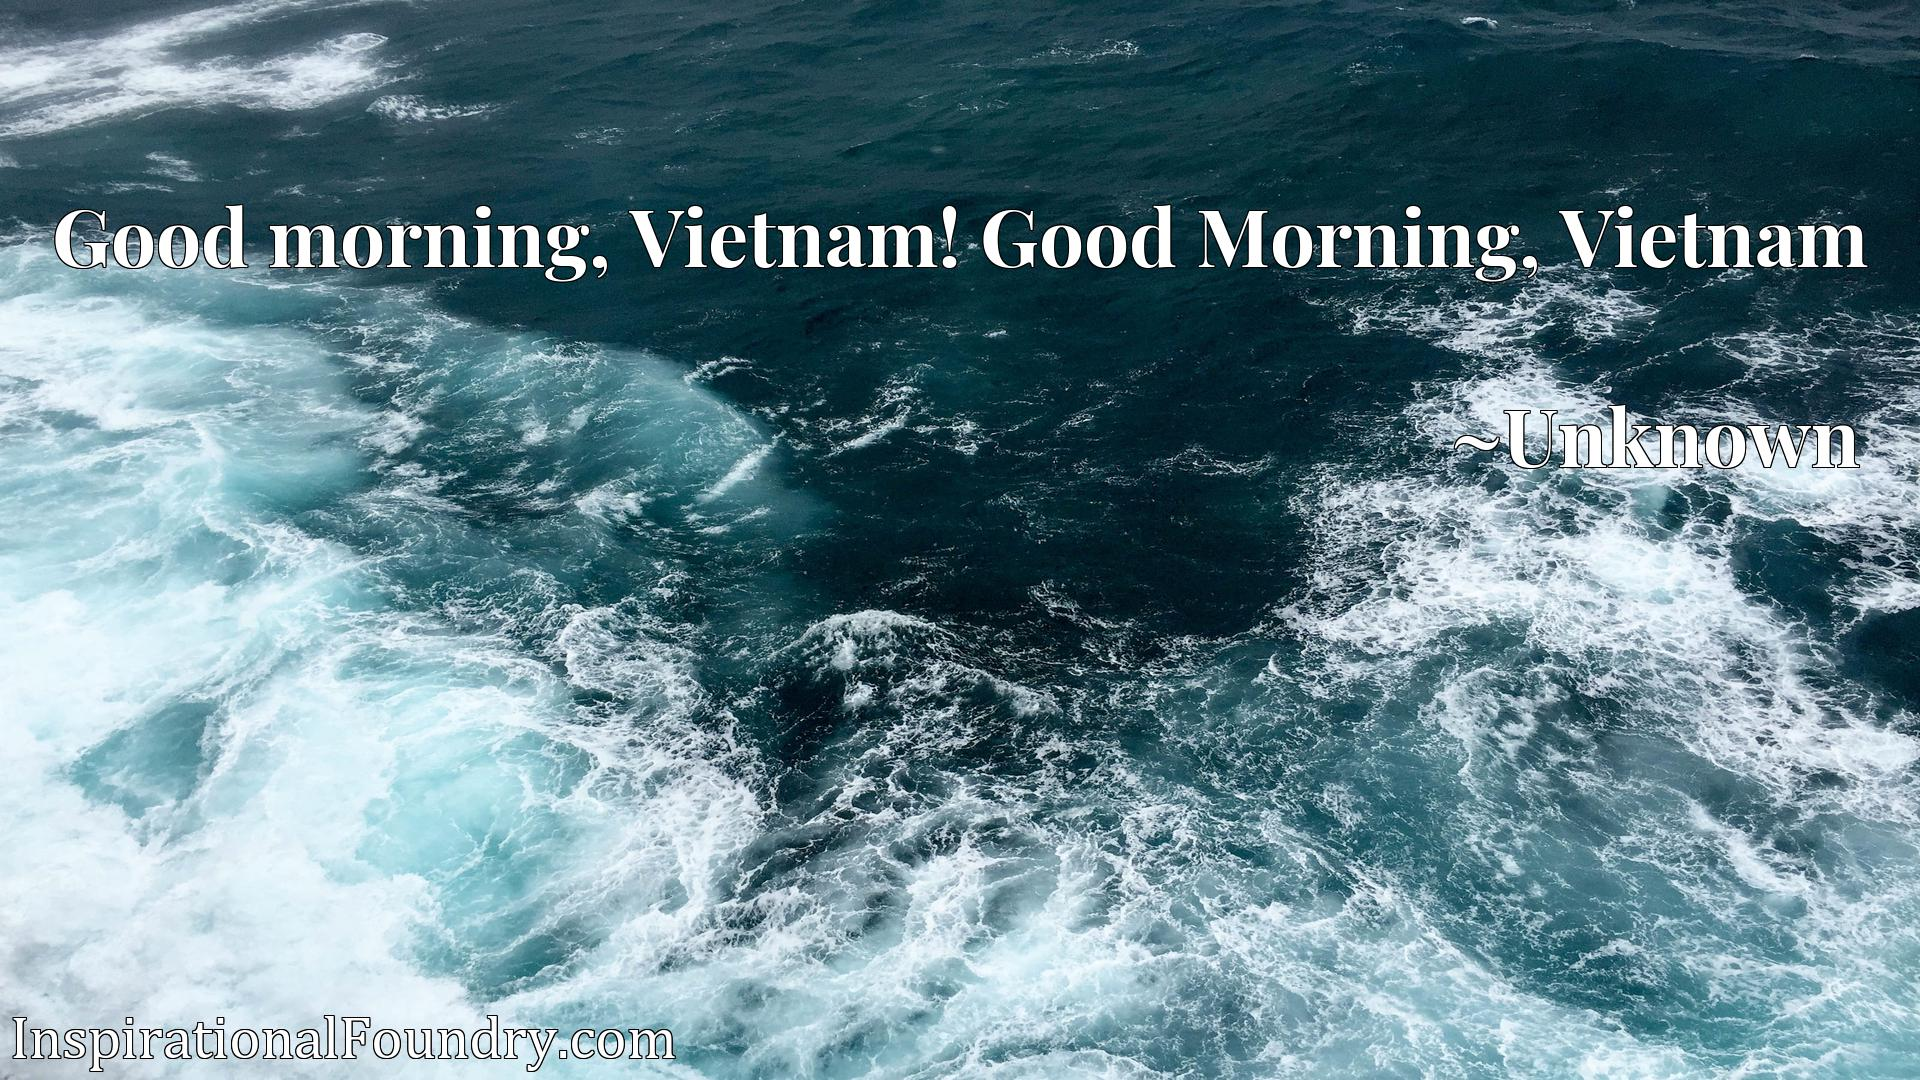 Good morning, Vietnam! Good Morning, Vietnam